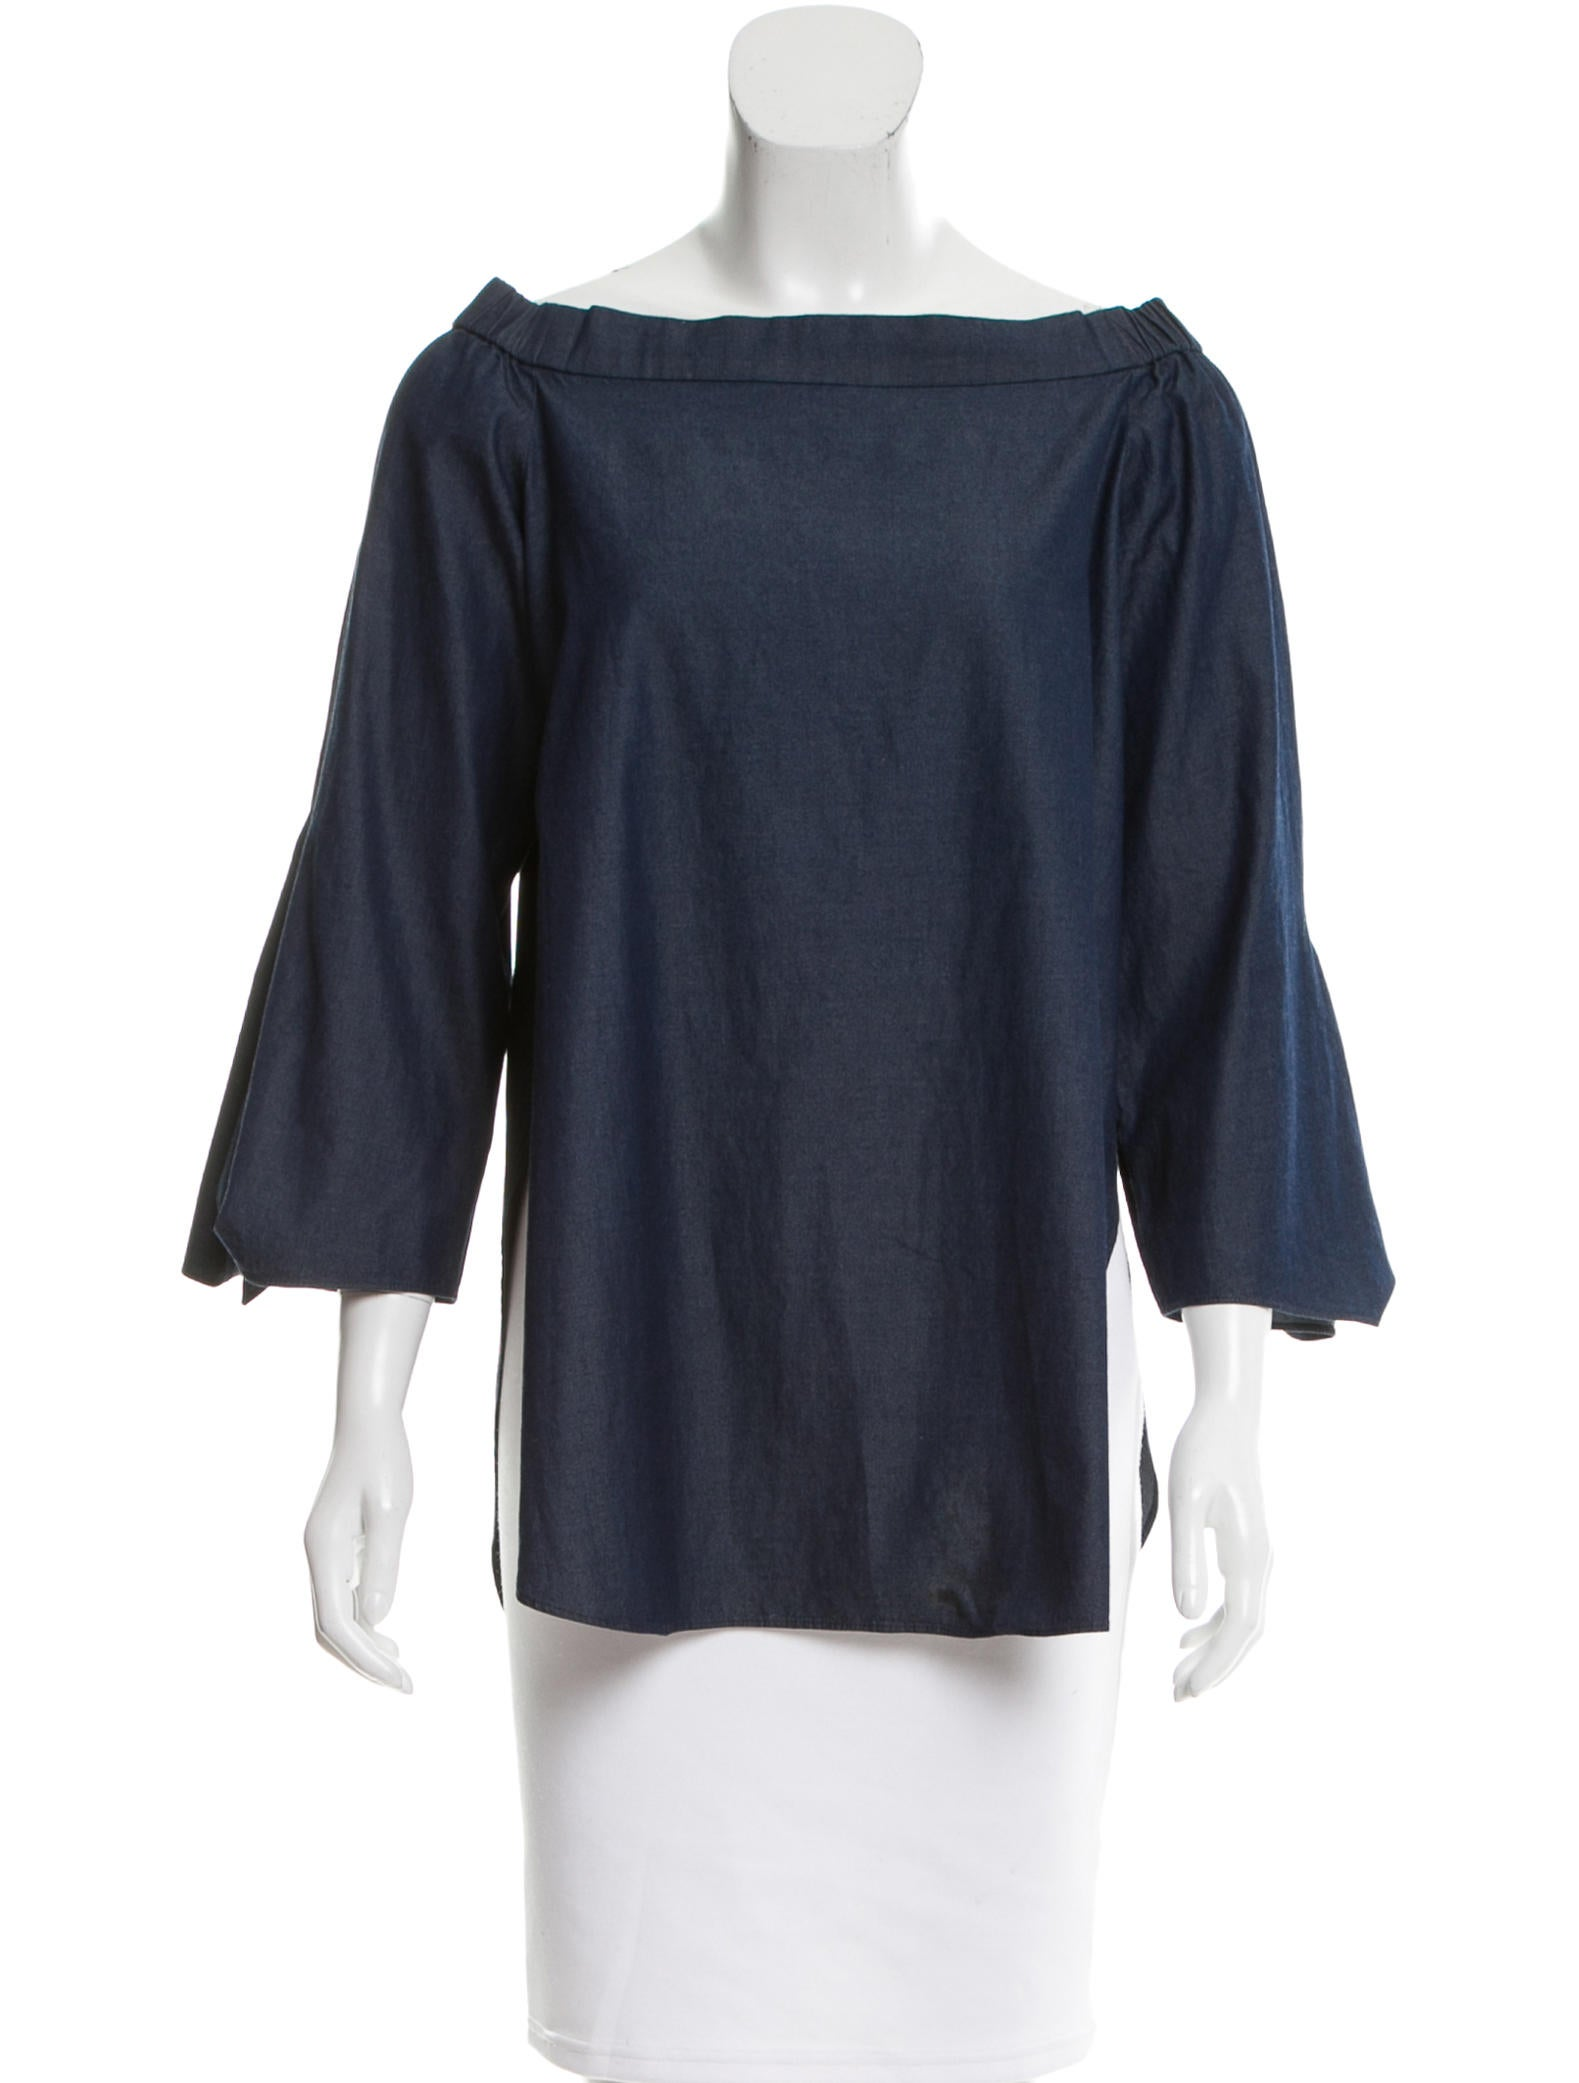 Tibi off the shoulder chambray top clothing wti34252 for Chambray top